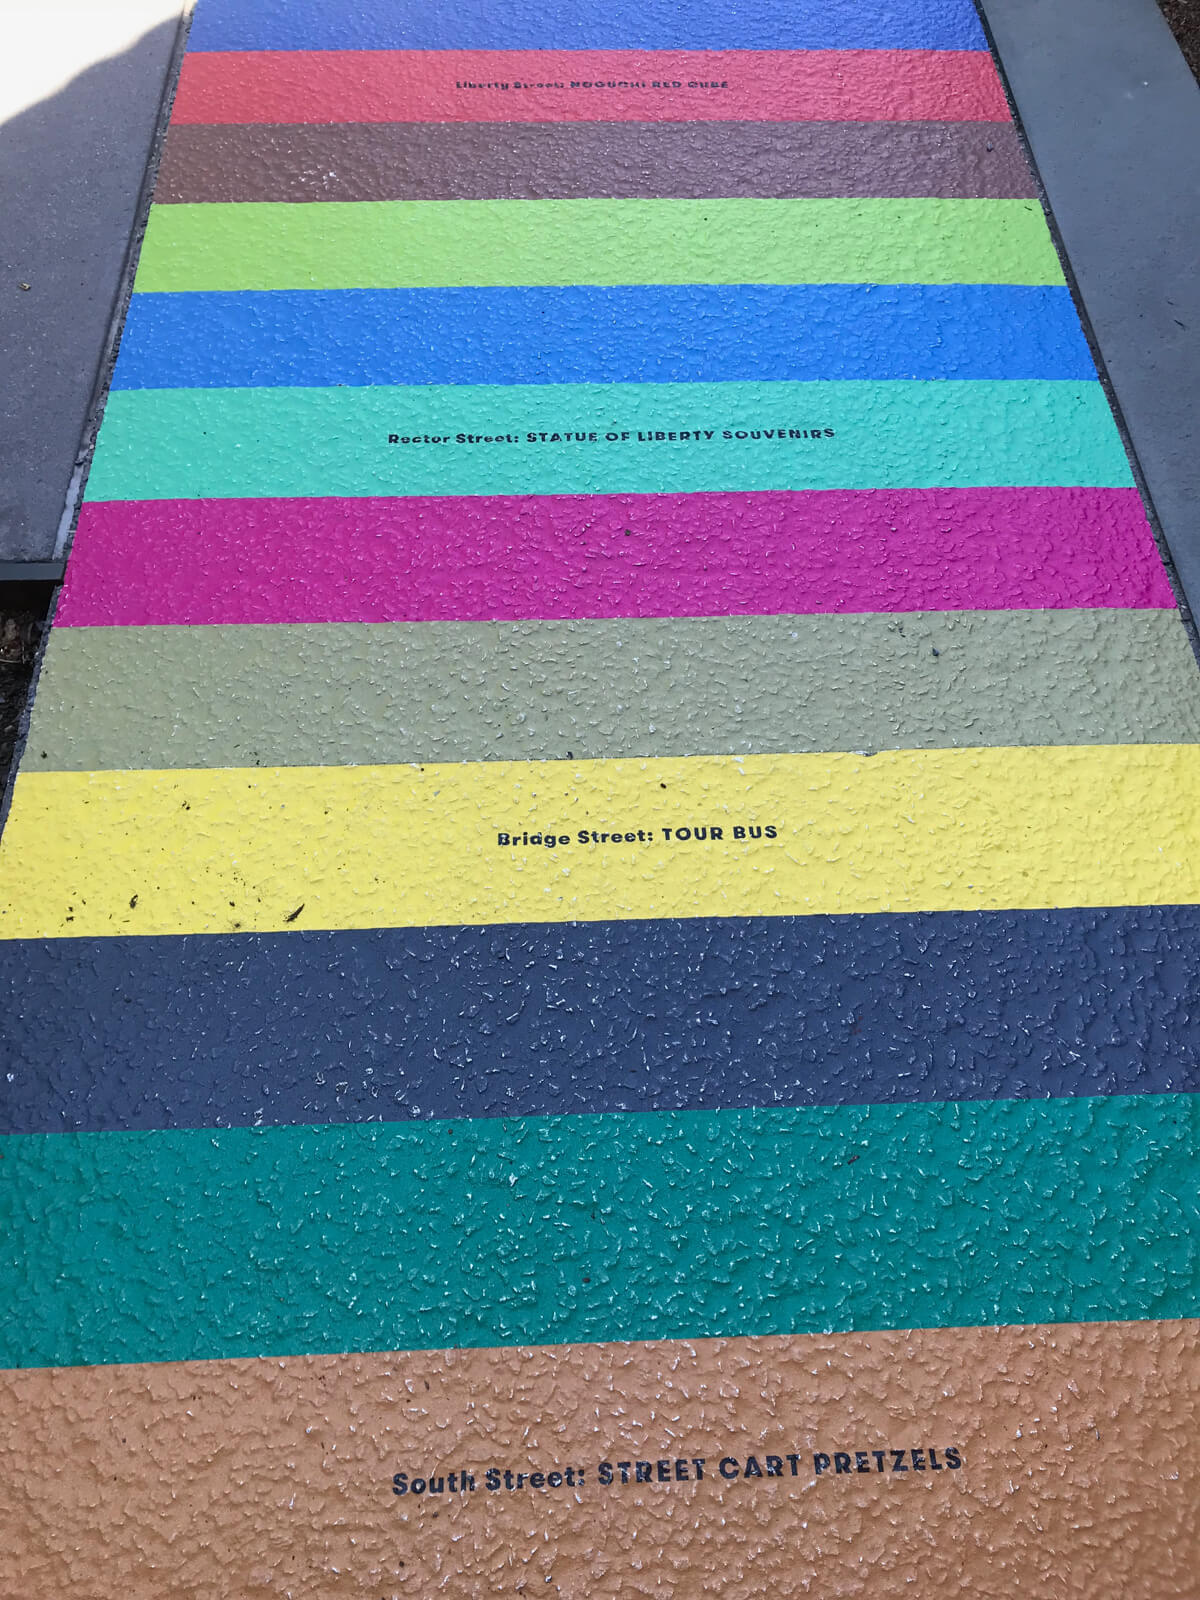 A close shot of a path painted in horizontal stripes in different colours. Some of the coloured areas are labelled with different street names and locations